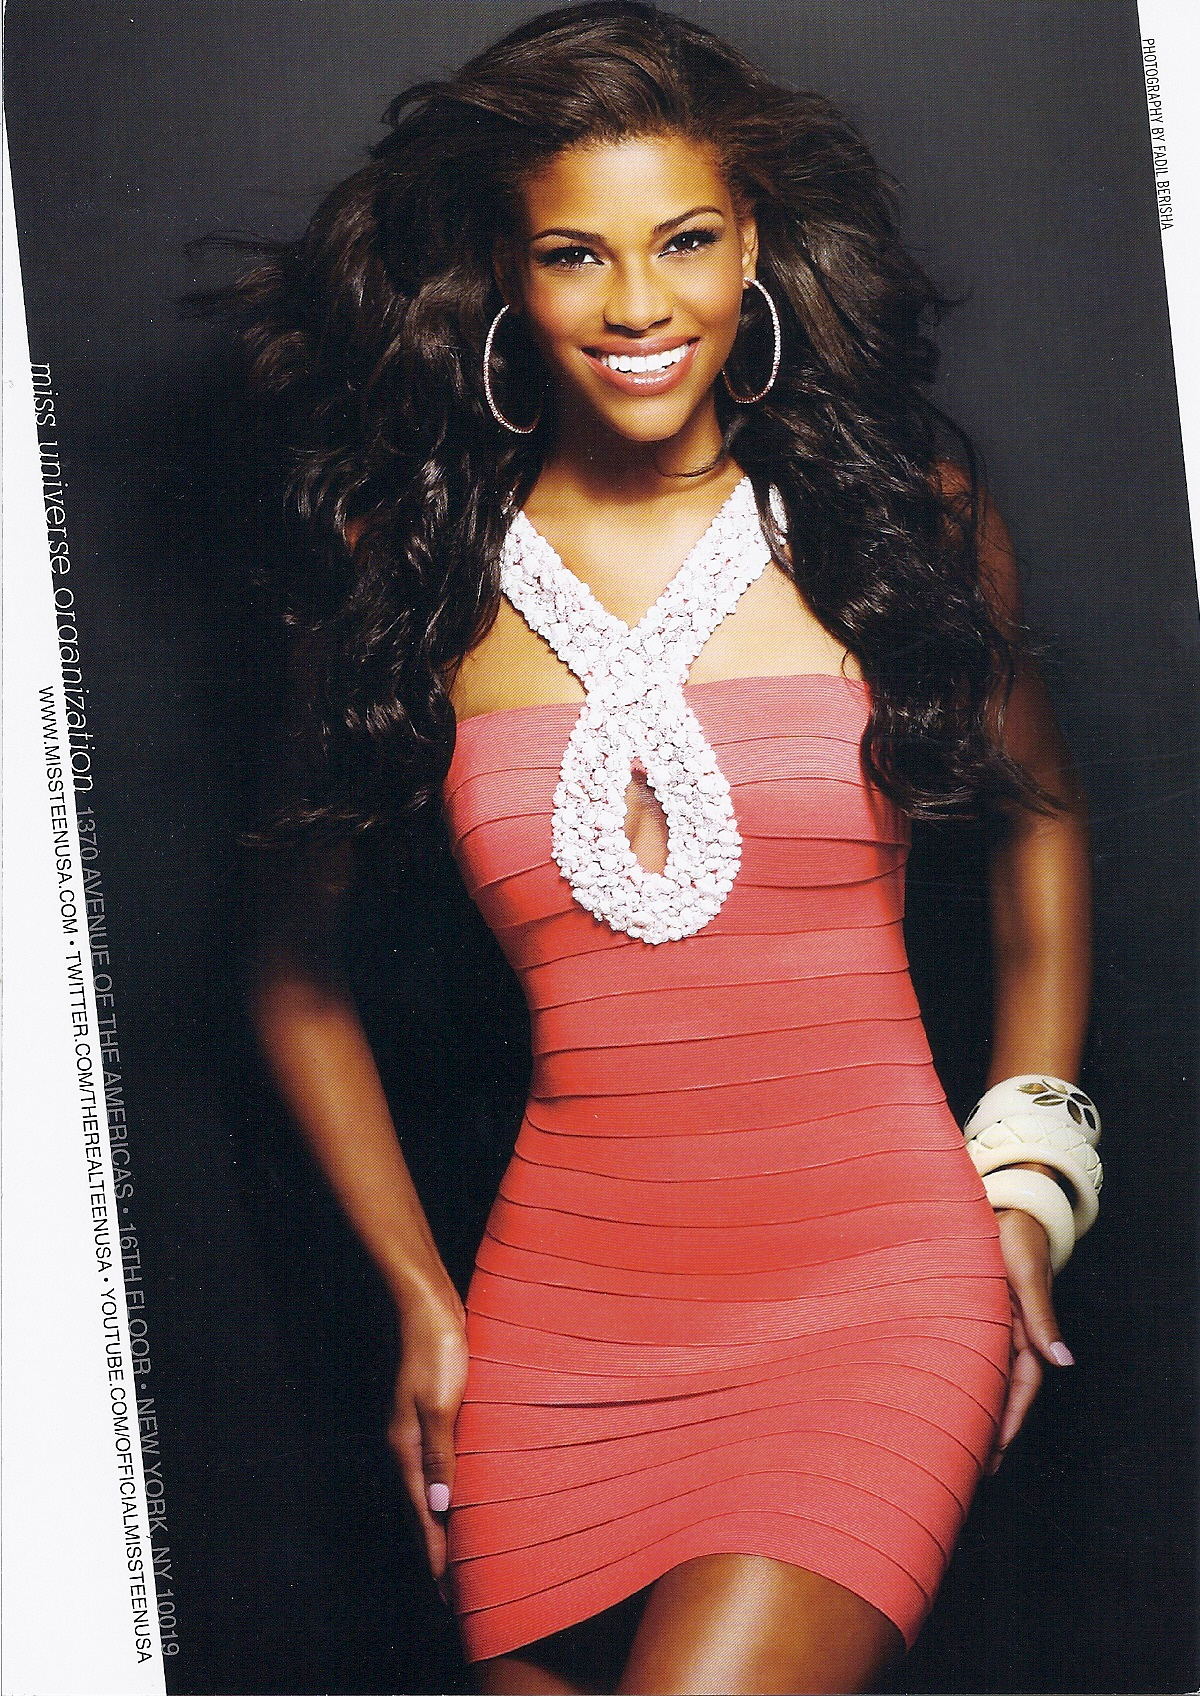 Kamie Crawford, Miss Teen USA 2010